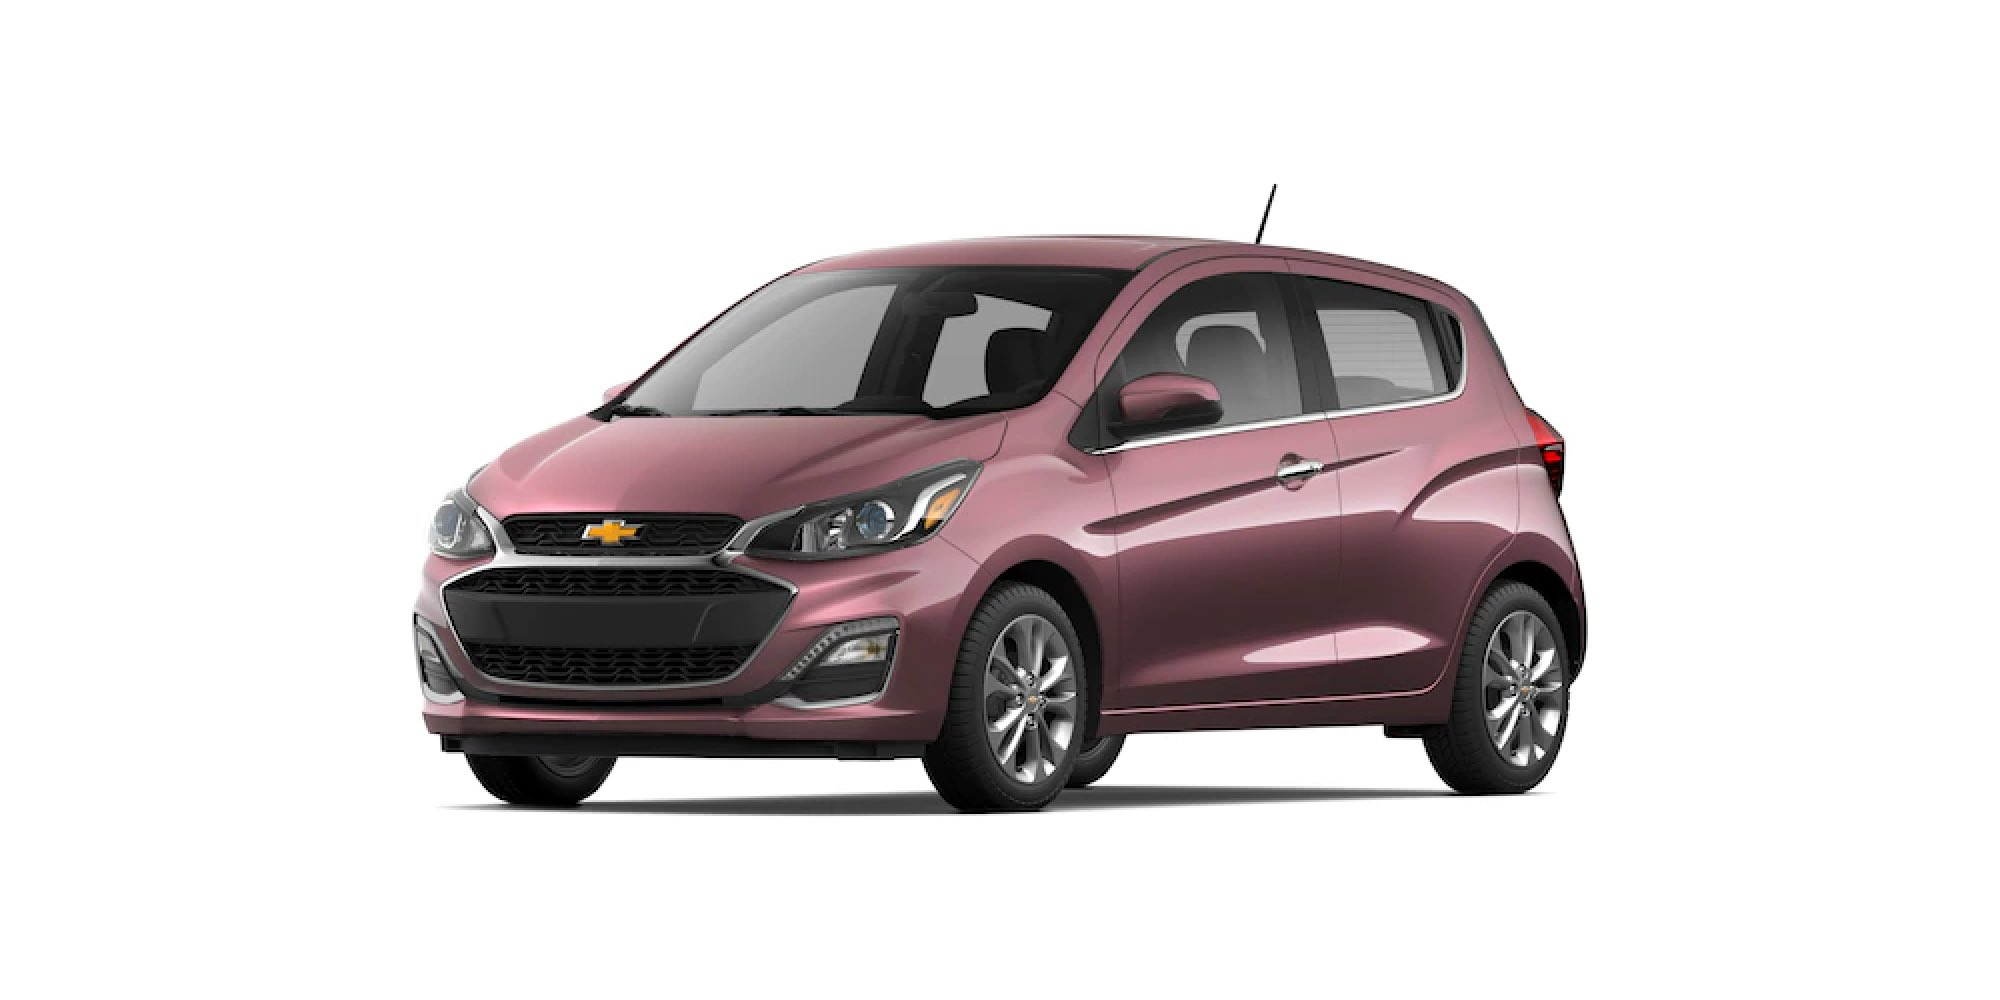 2021 Chevy Spark in Passion Fruit